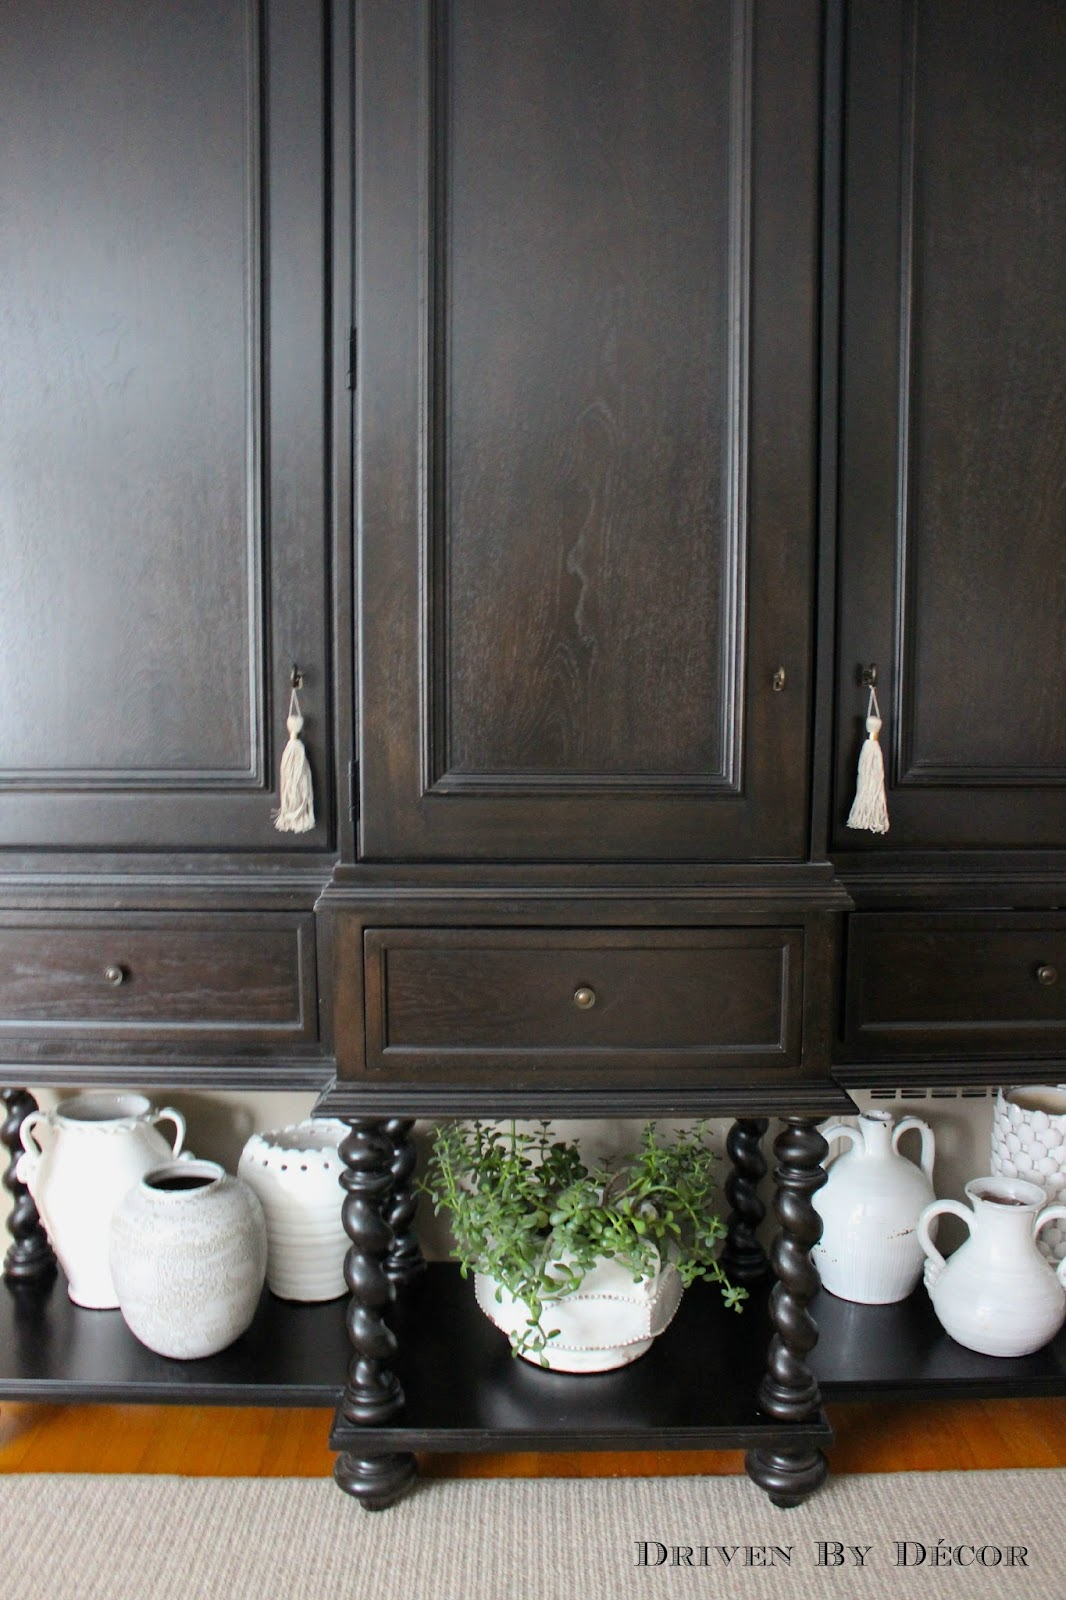 Ordinaire Adding Tassels To A Few Handles On A Chest Of Drawers Or Armoire Would Be  Another Fun Way To Use Them And Would Be Great For Livening Up An Old Piece  Of ...